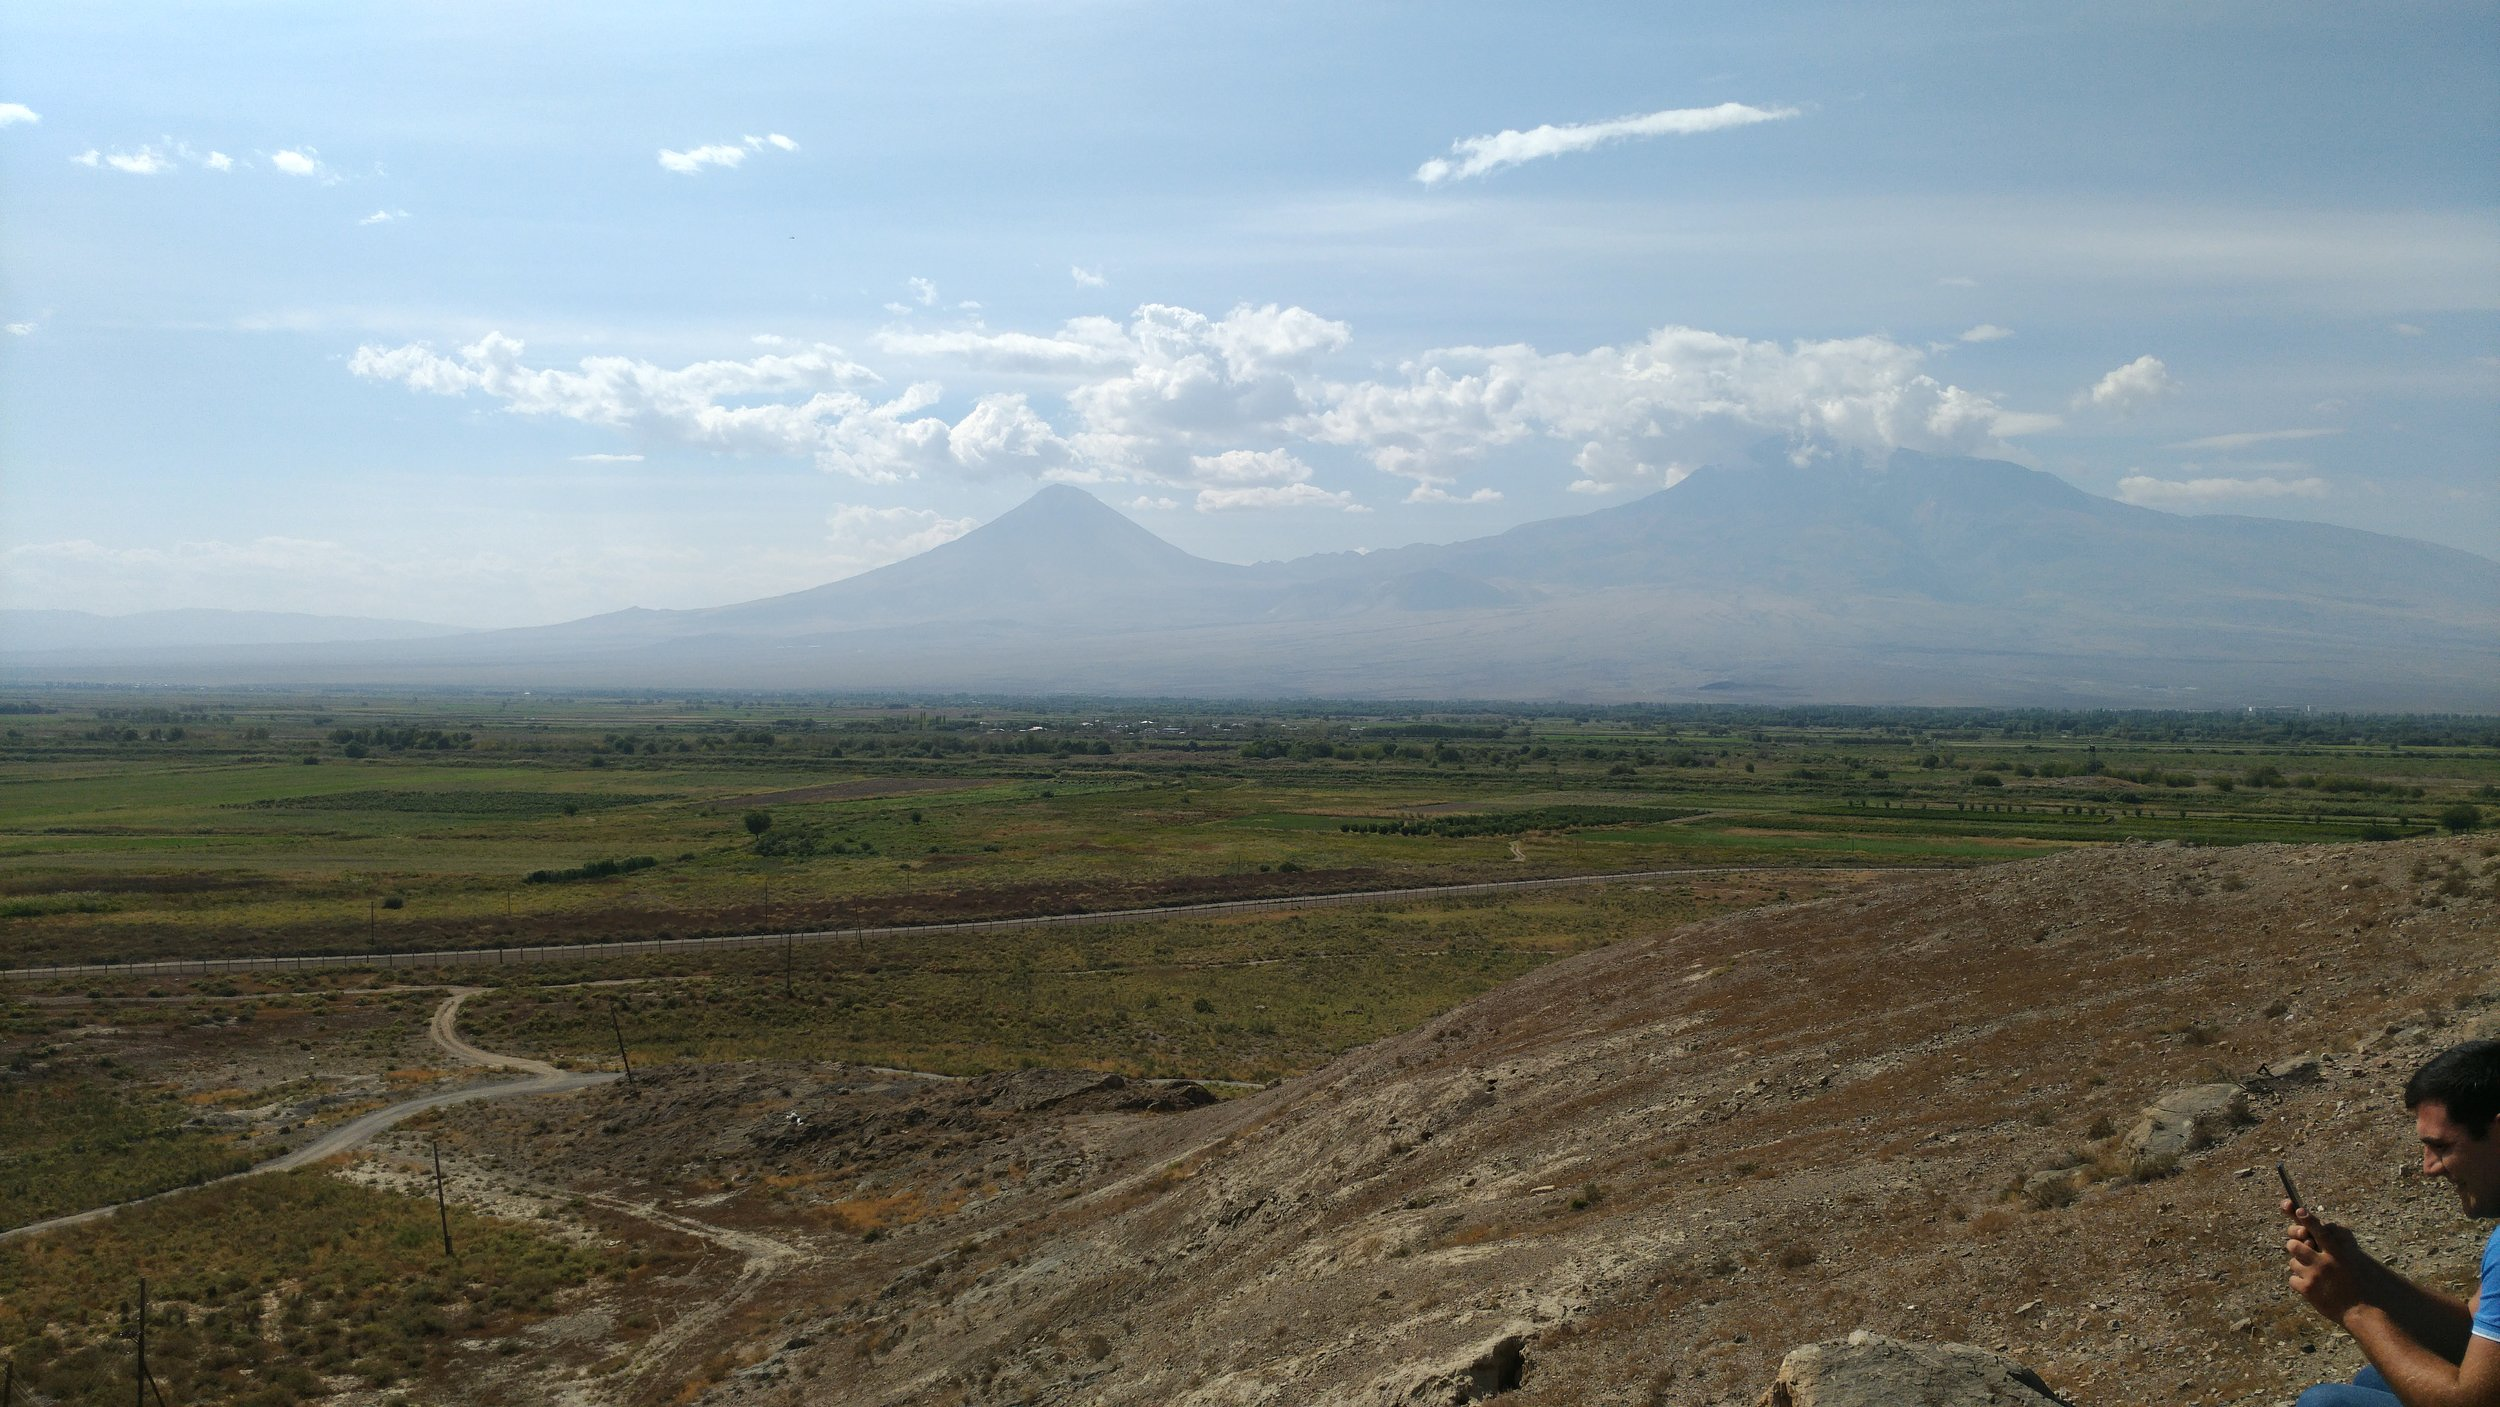 Ararat on the horizon